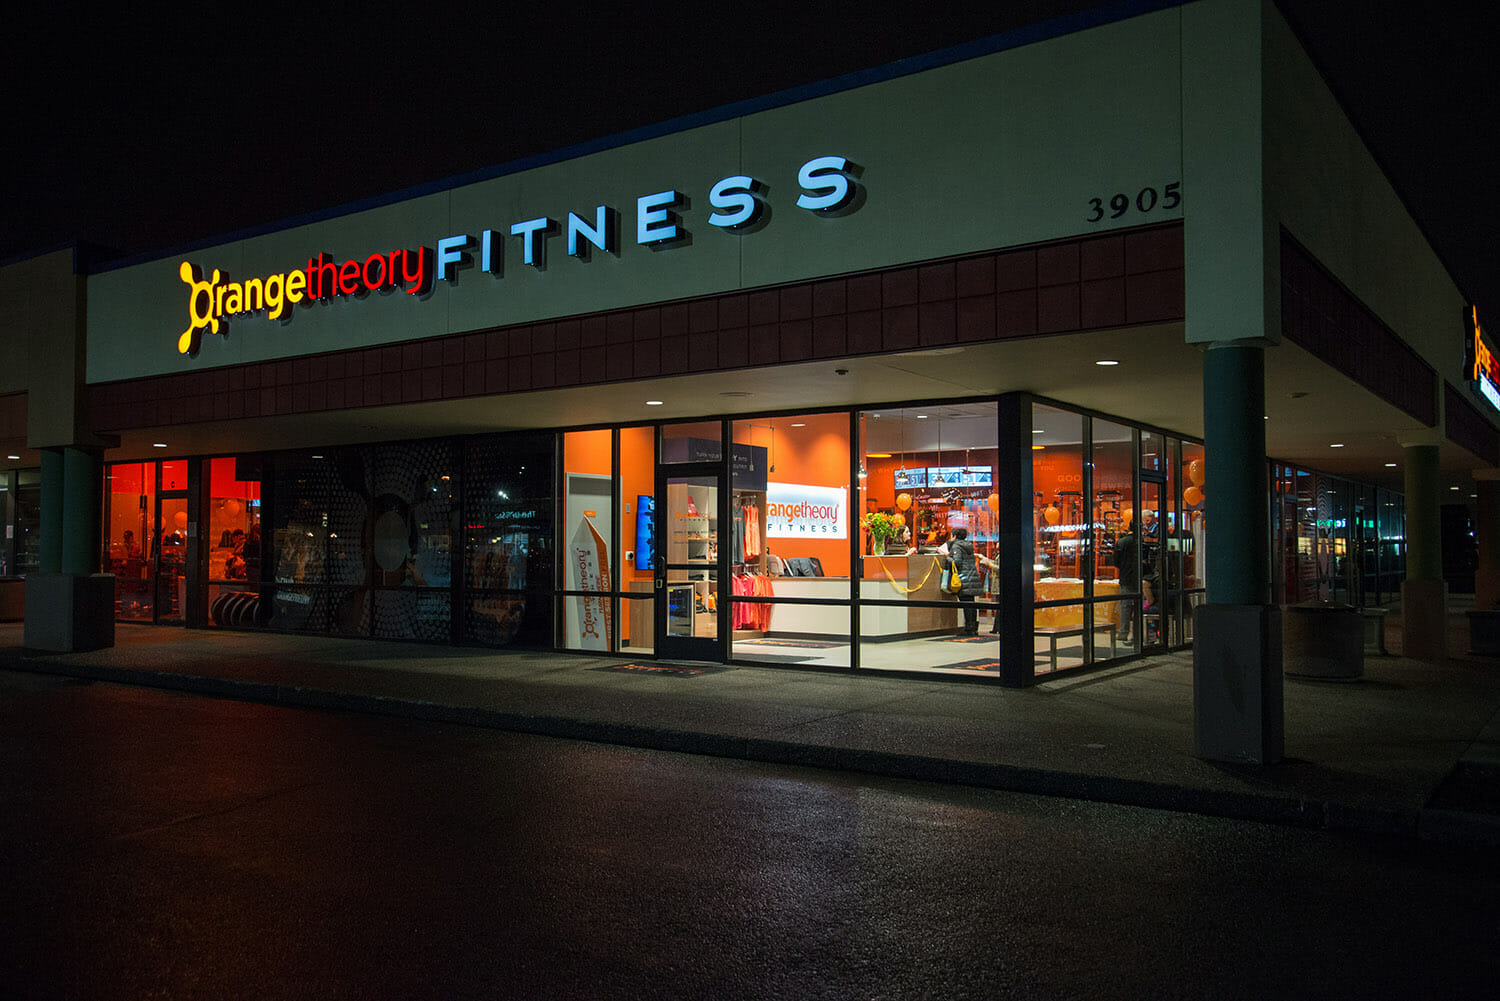 Orange Theory Fitness storefront in Beaverton, OR